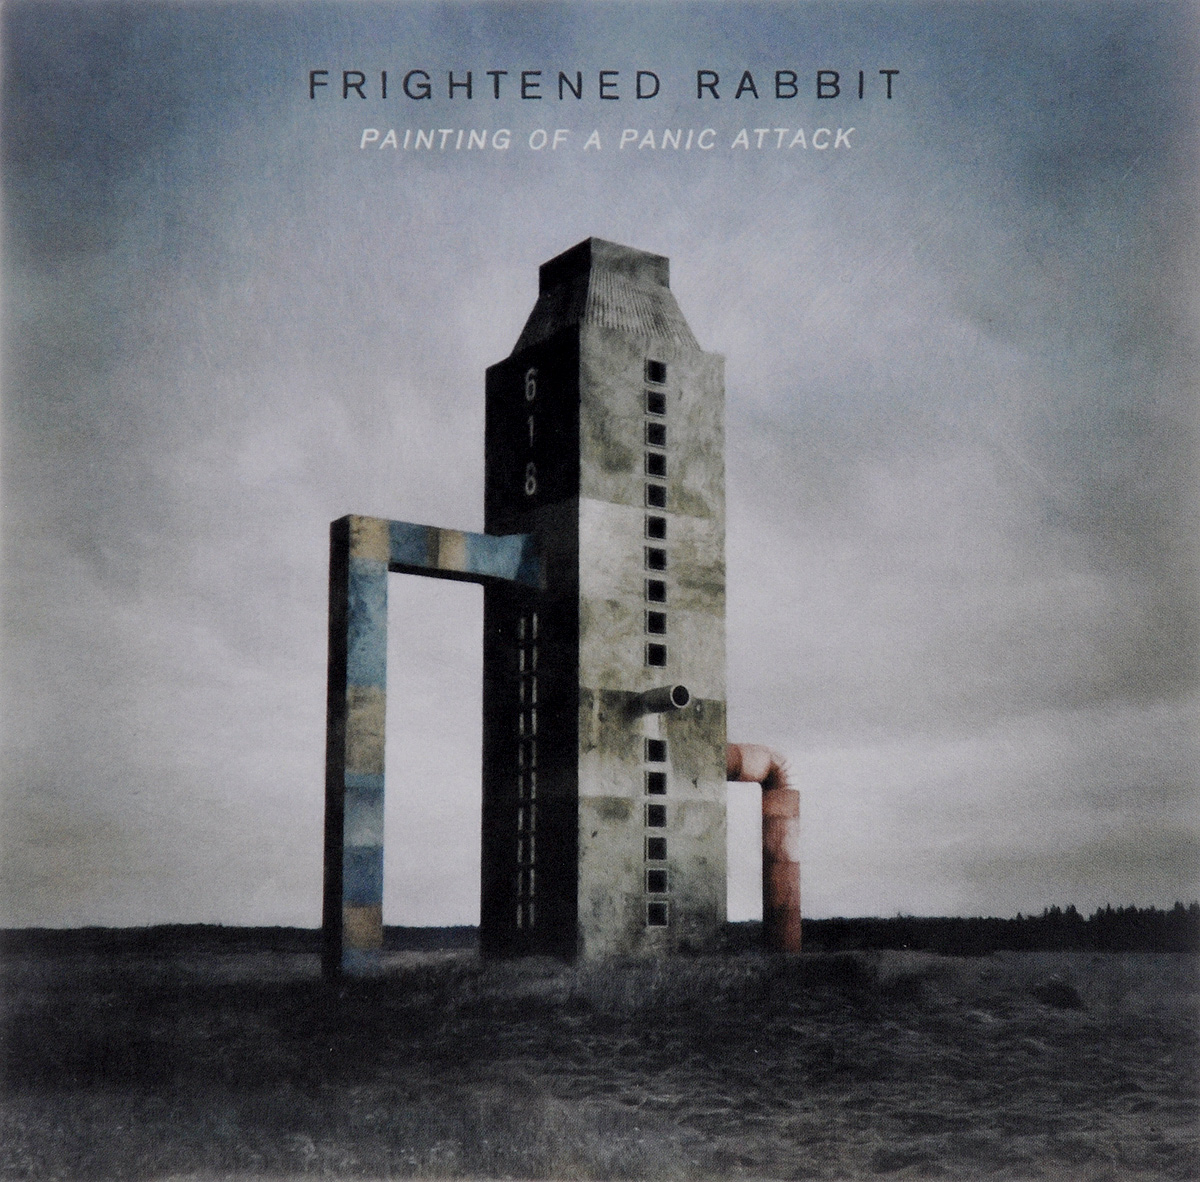 Frightened Rabbit Frightened Rabbit. Painting Of A Panic Attack rabbit and bear attack of the snack